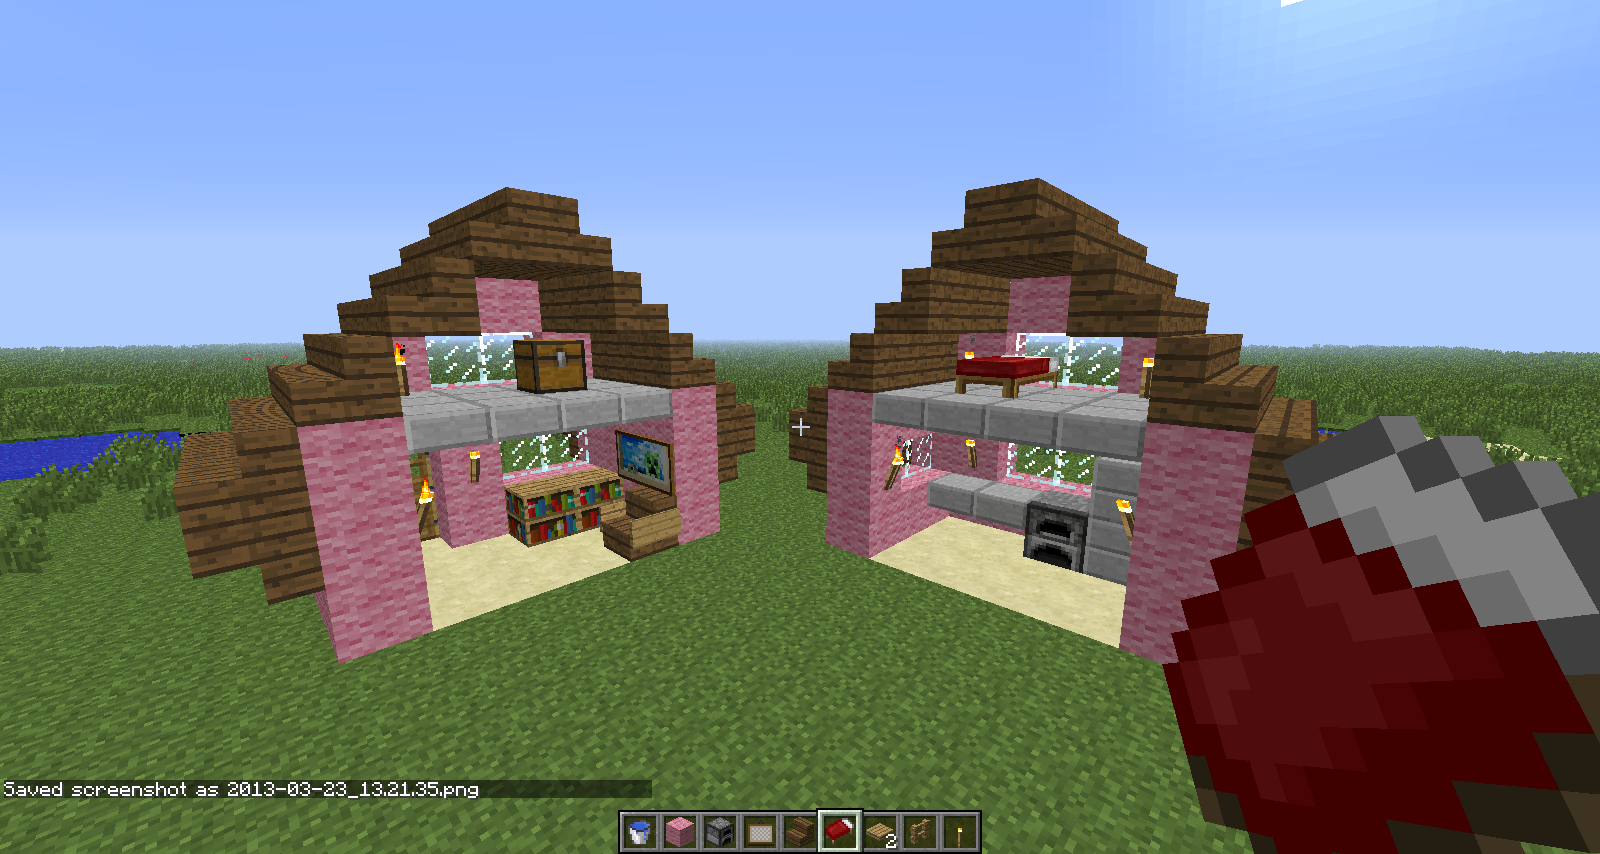 unorthodox minecraft yes this doll house design began in minecraft